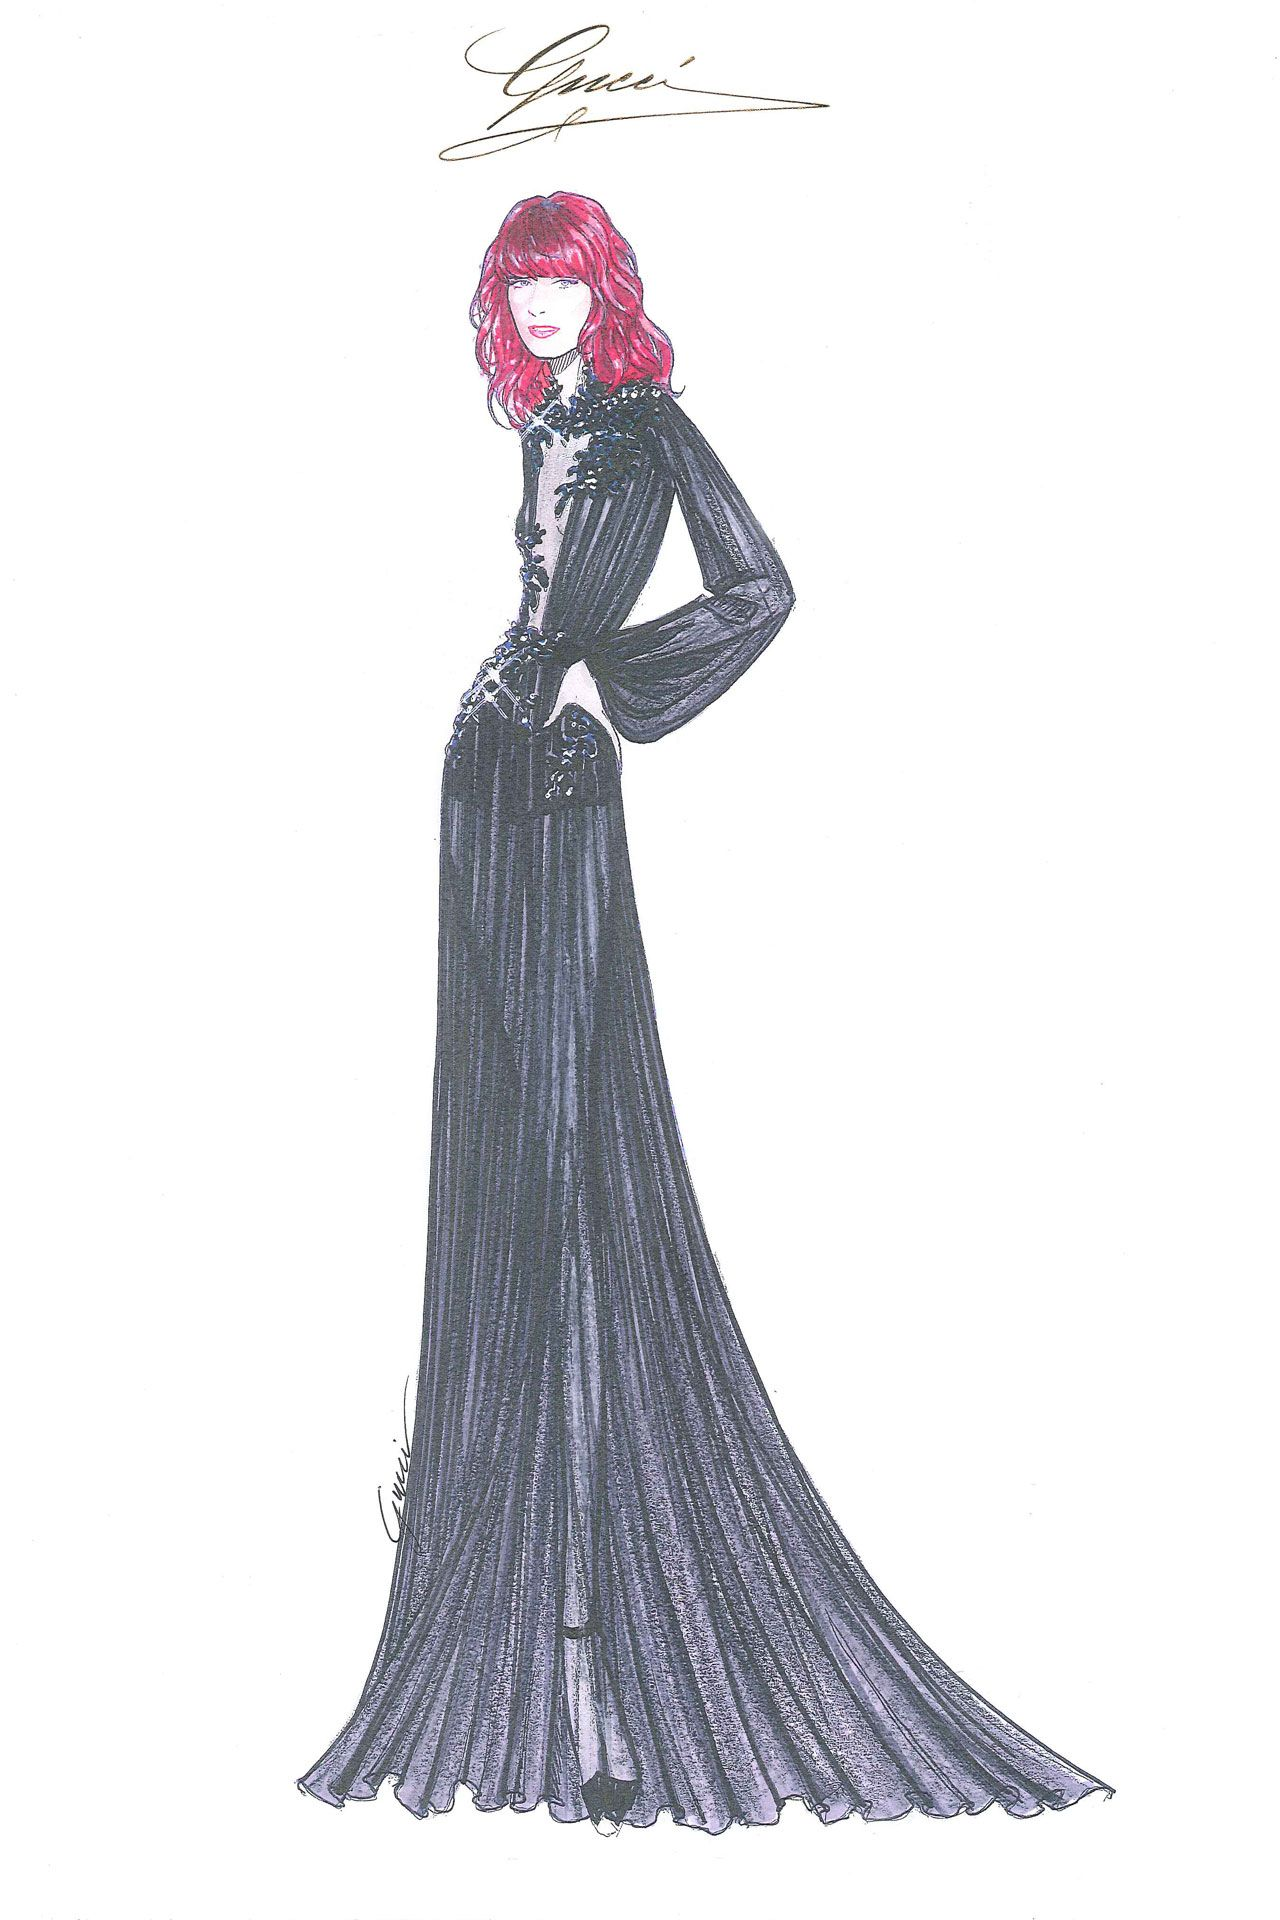 Gucci fashion sketches of dresses